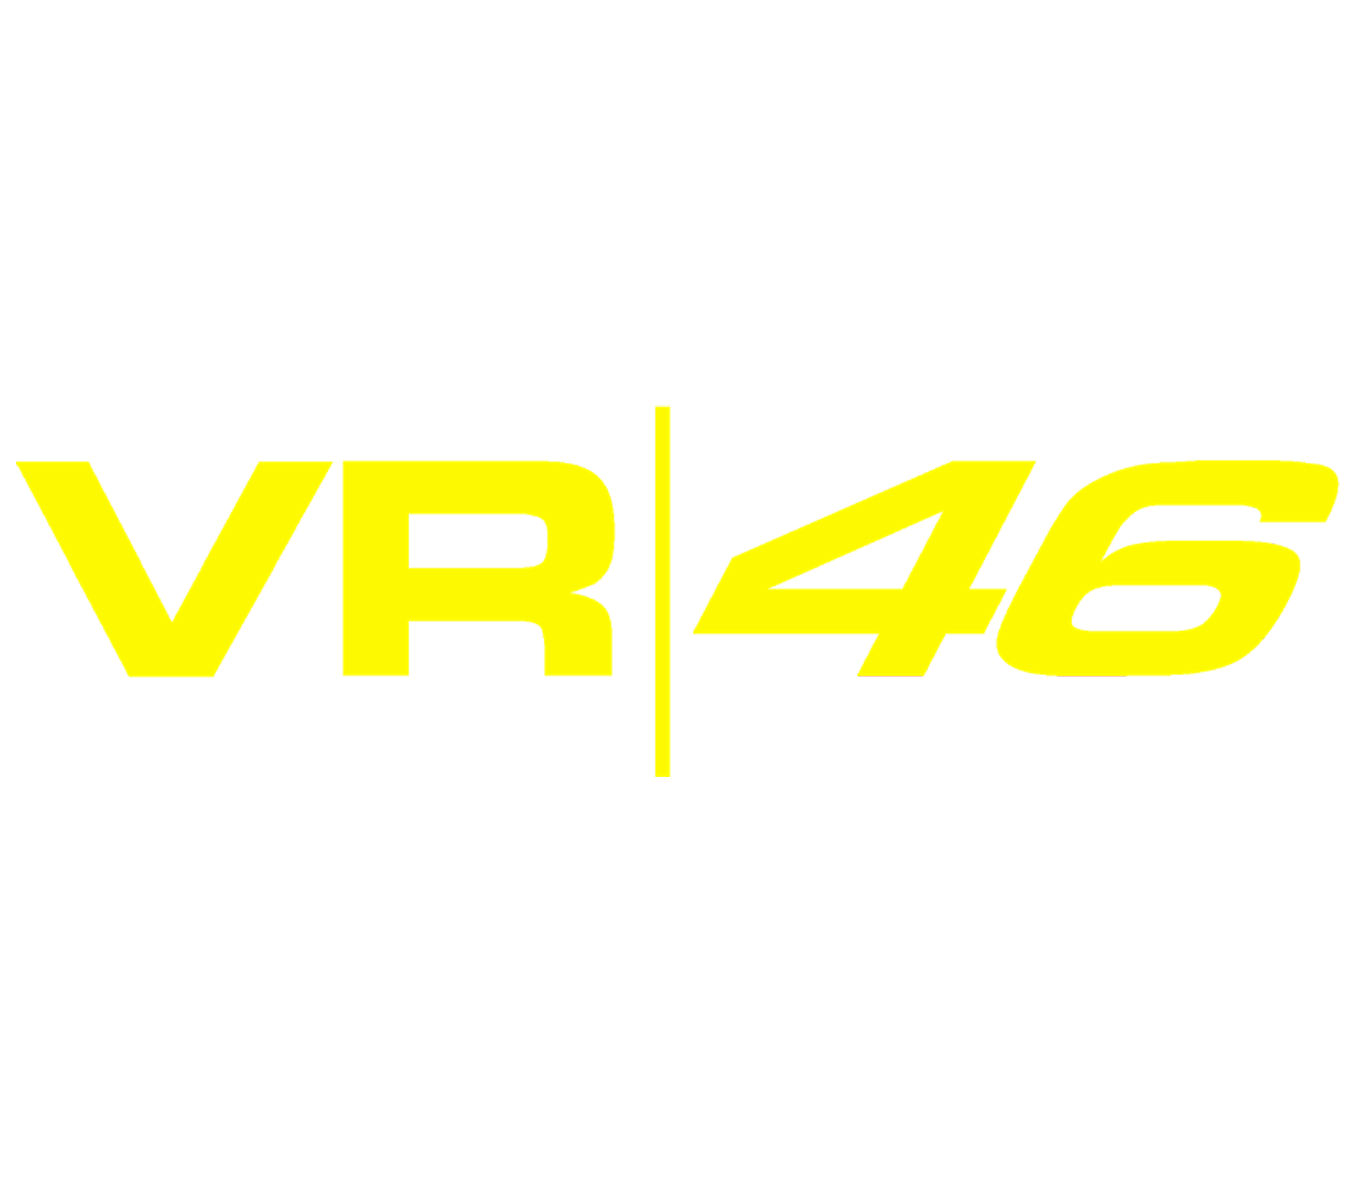 Vr46 png 3 » PNG Image.